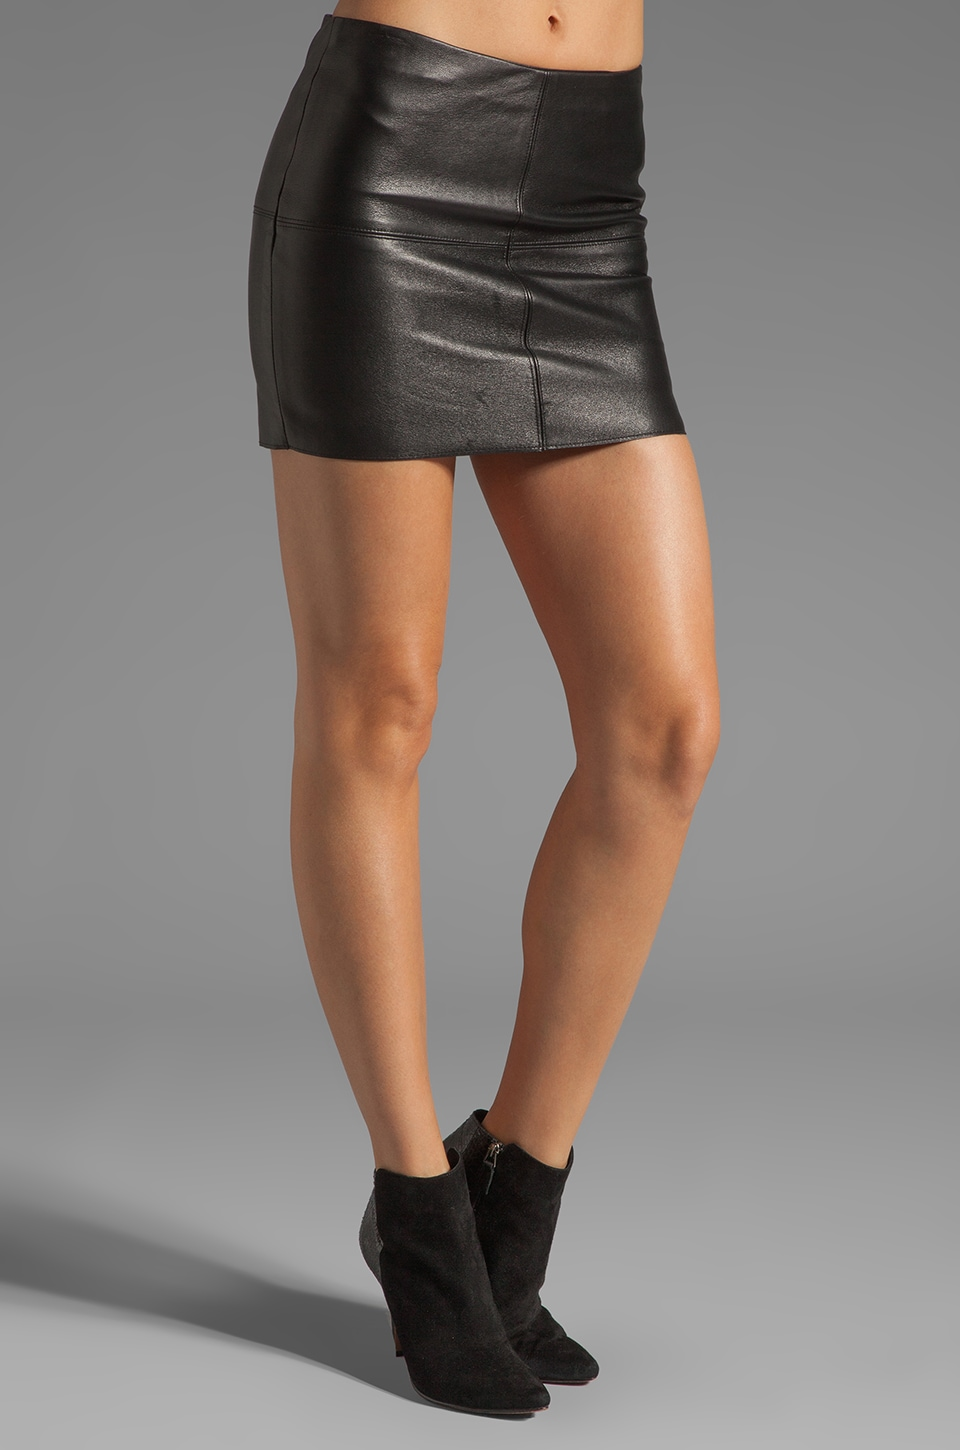 Bailey 44 Turtle Mini Leather Skirt in Black